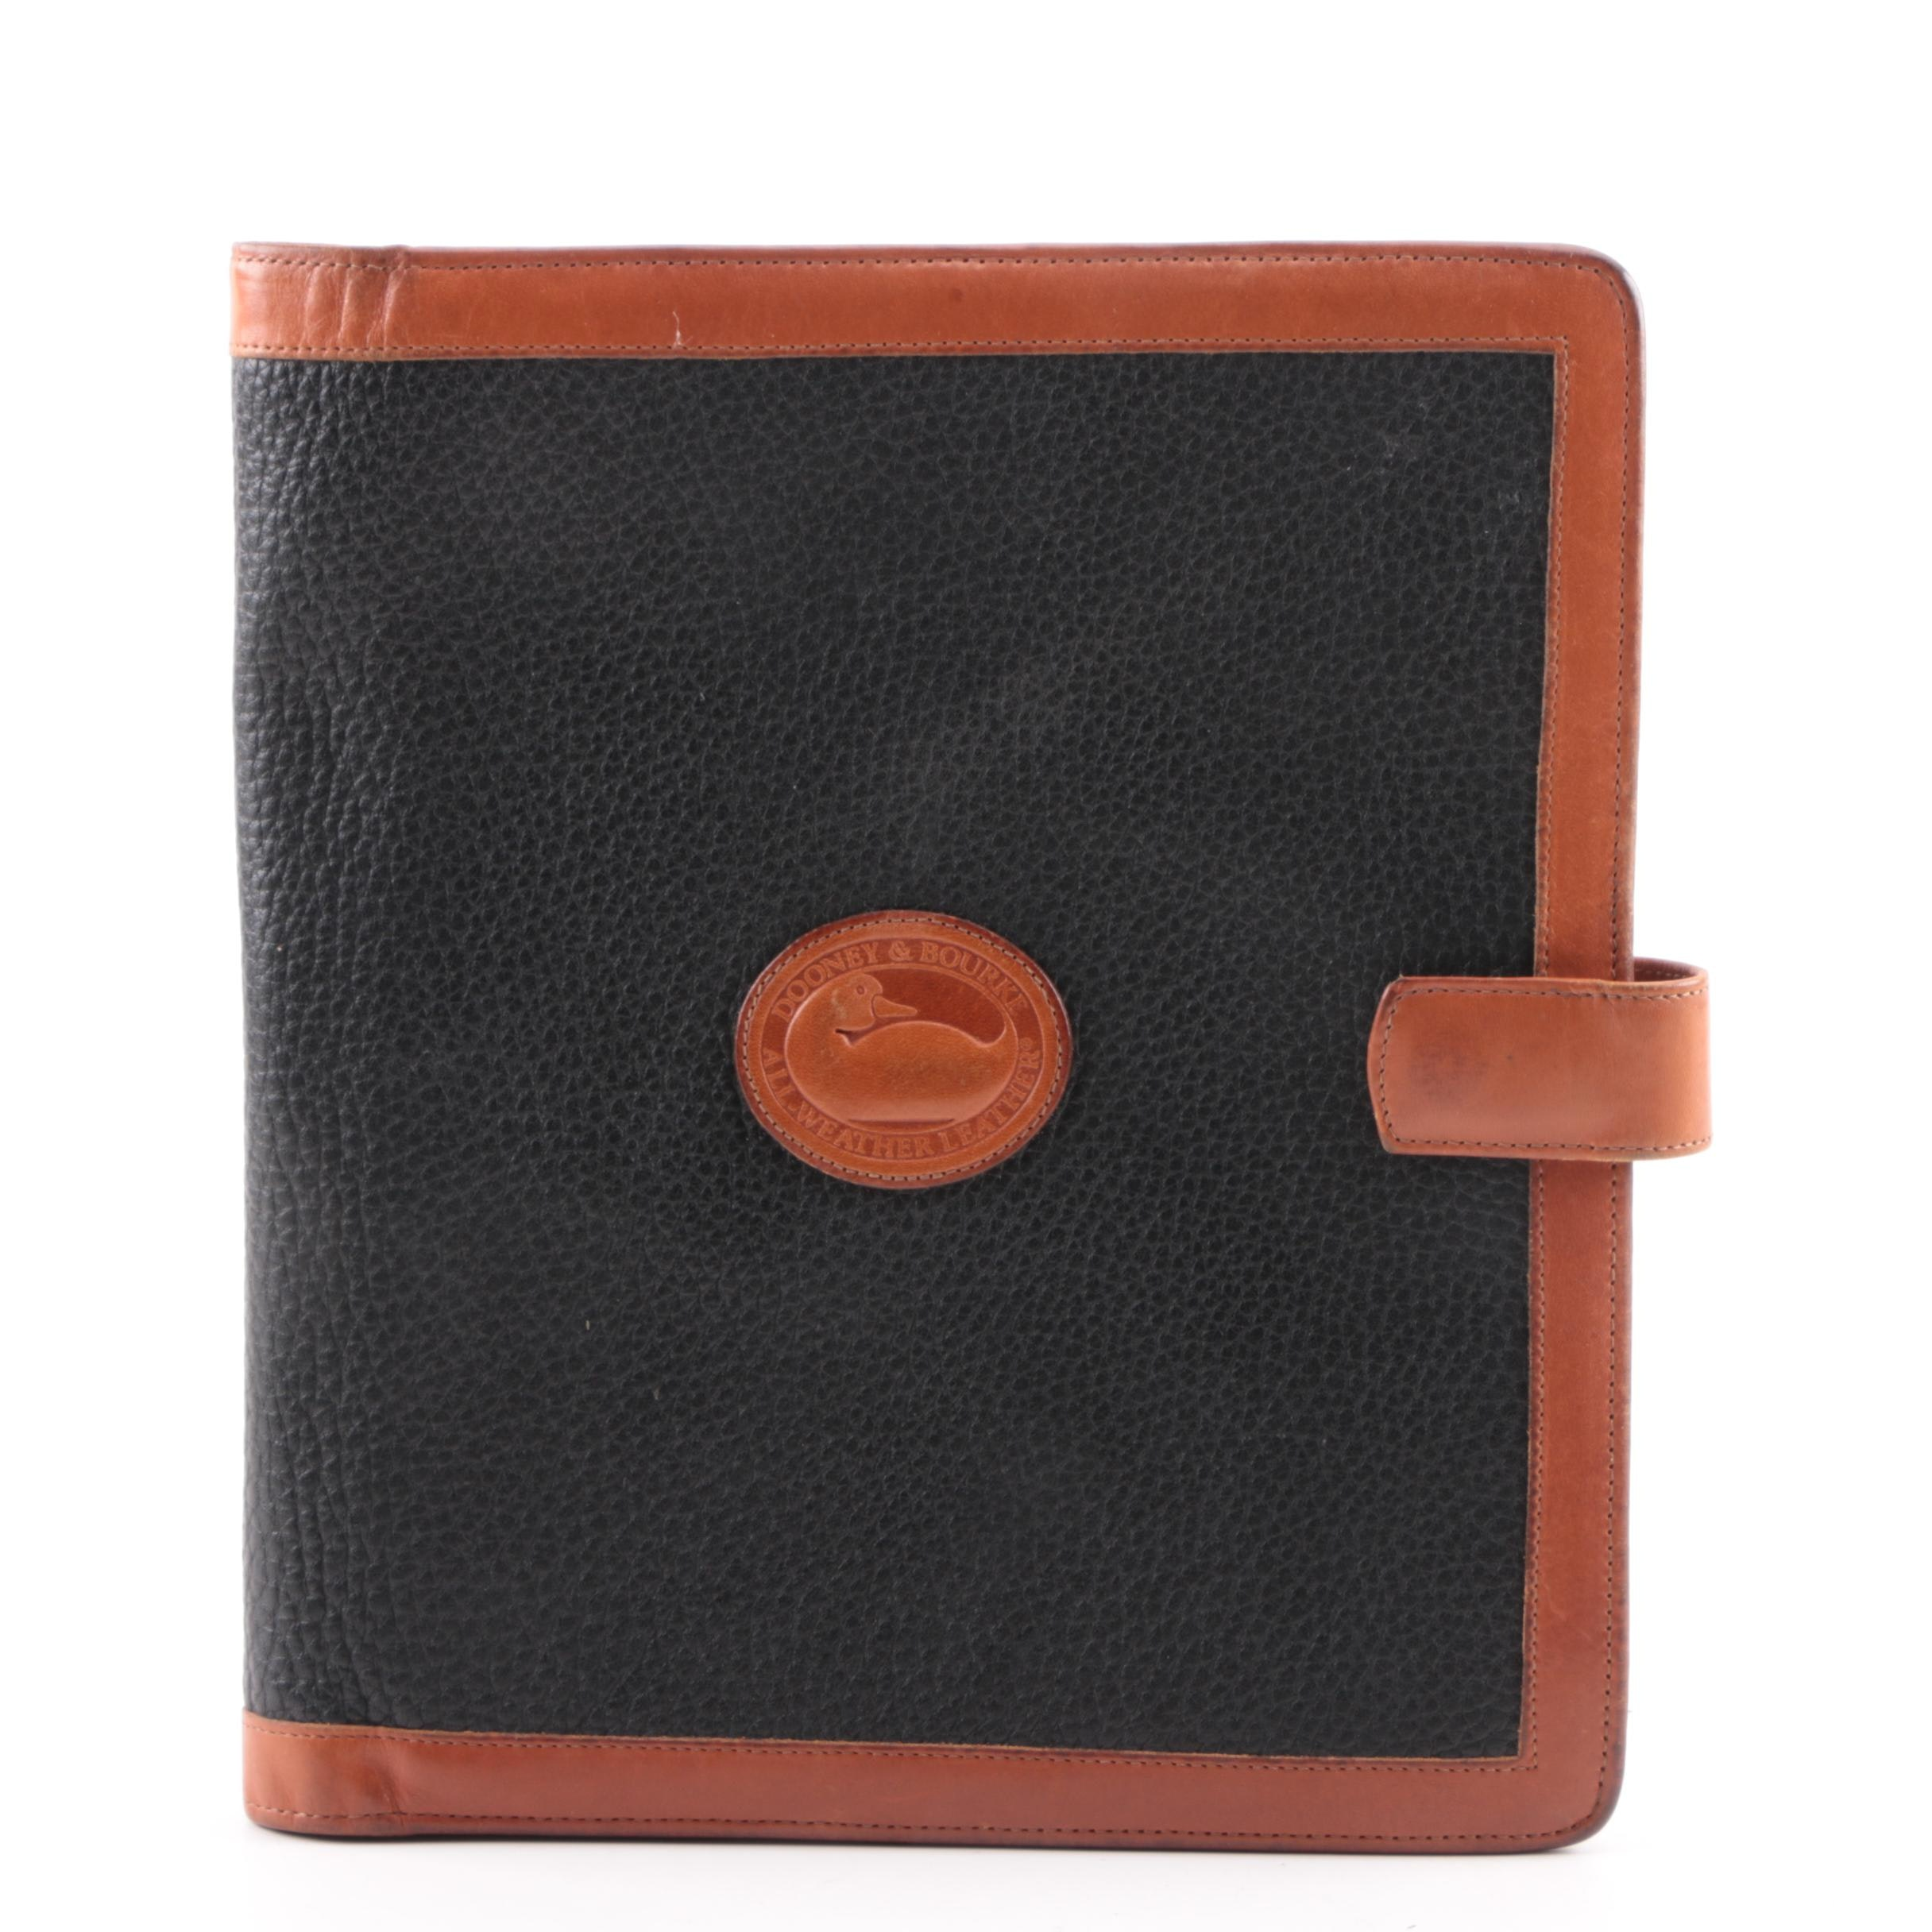 Dooney & Bourke All-Weather Leather Navy Blue and Tan Portfolio